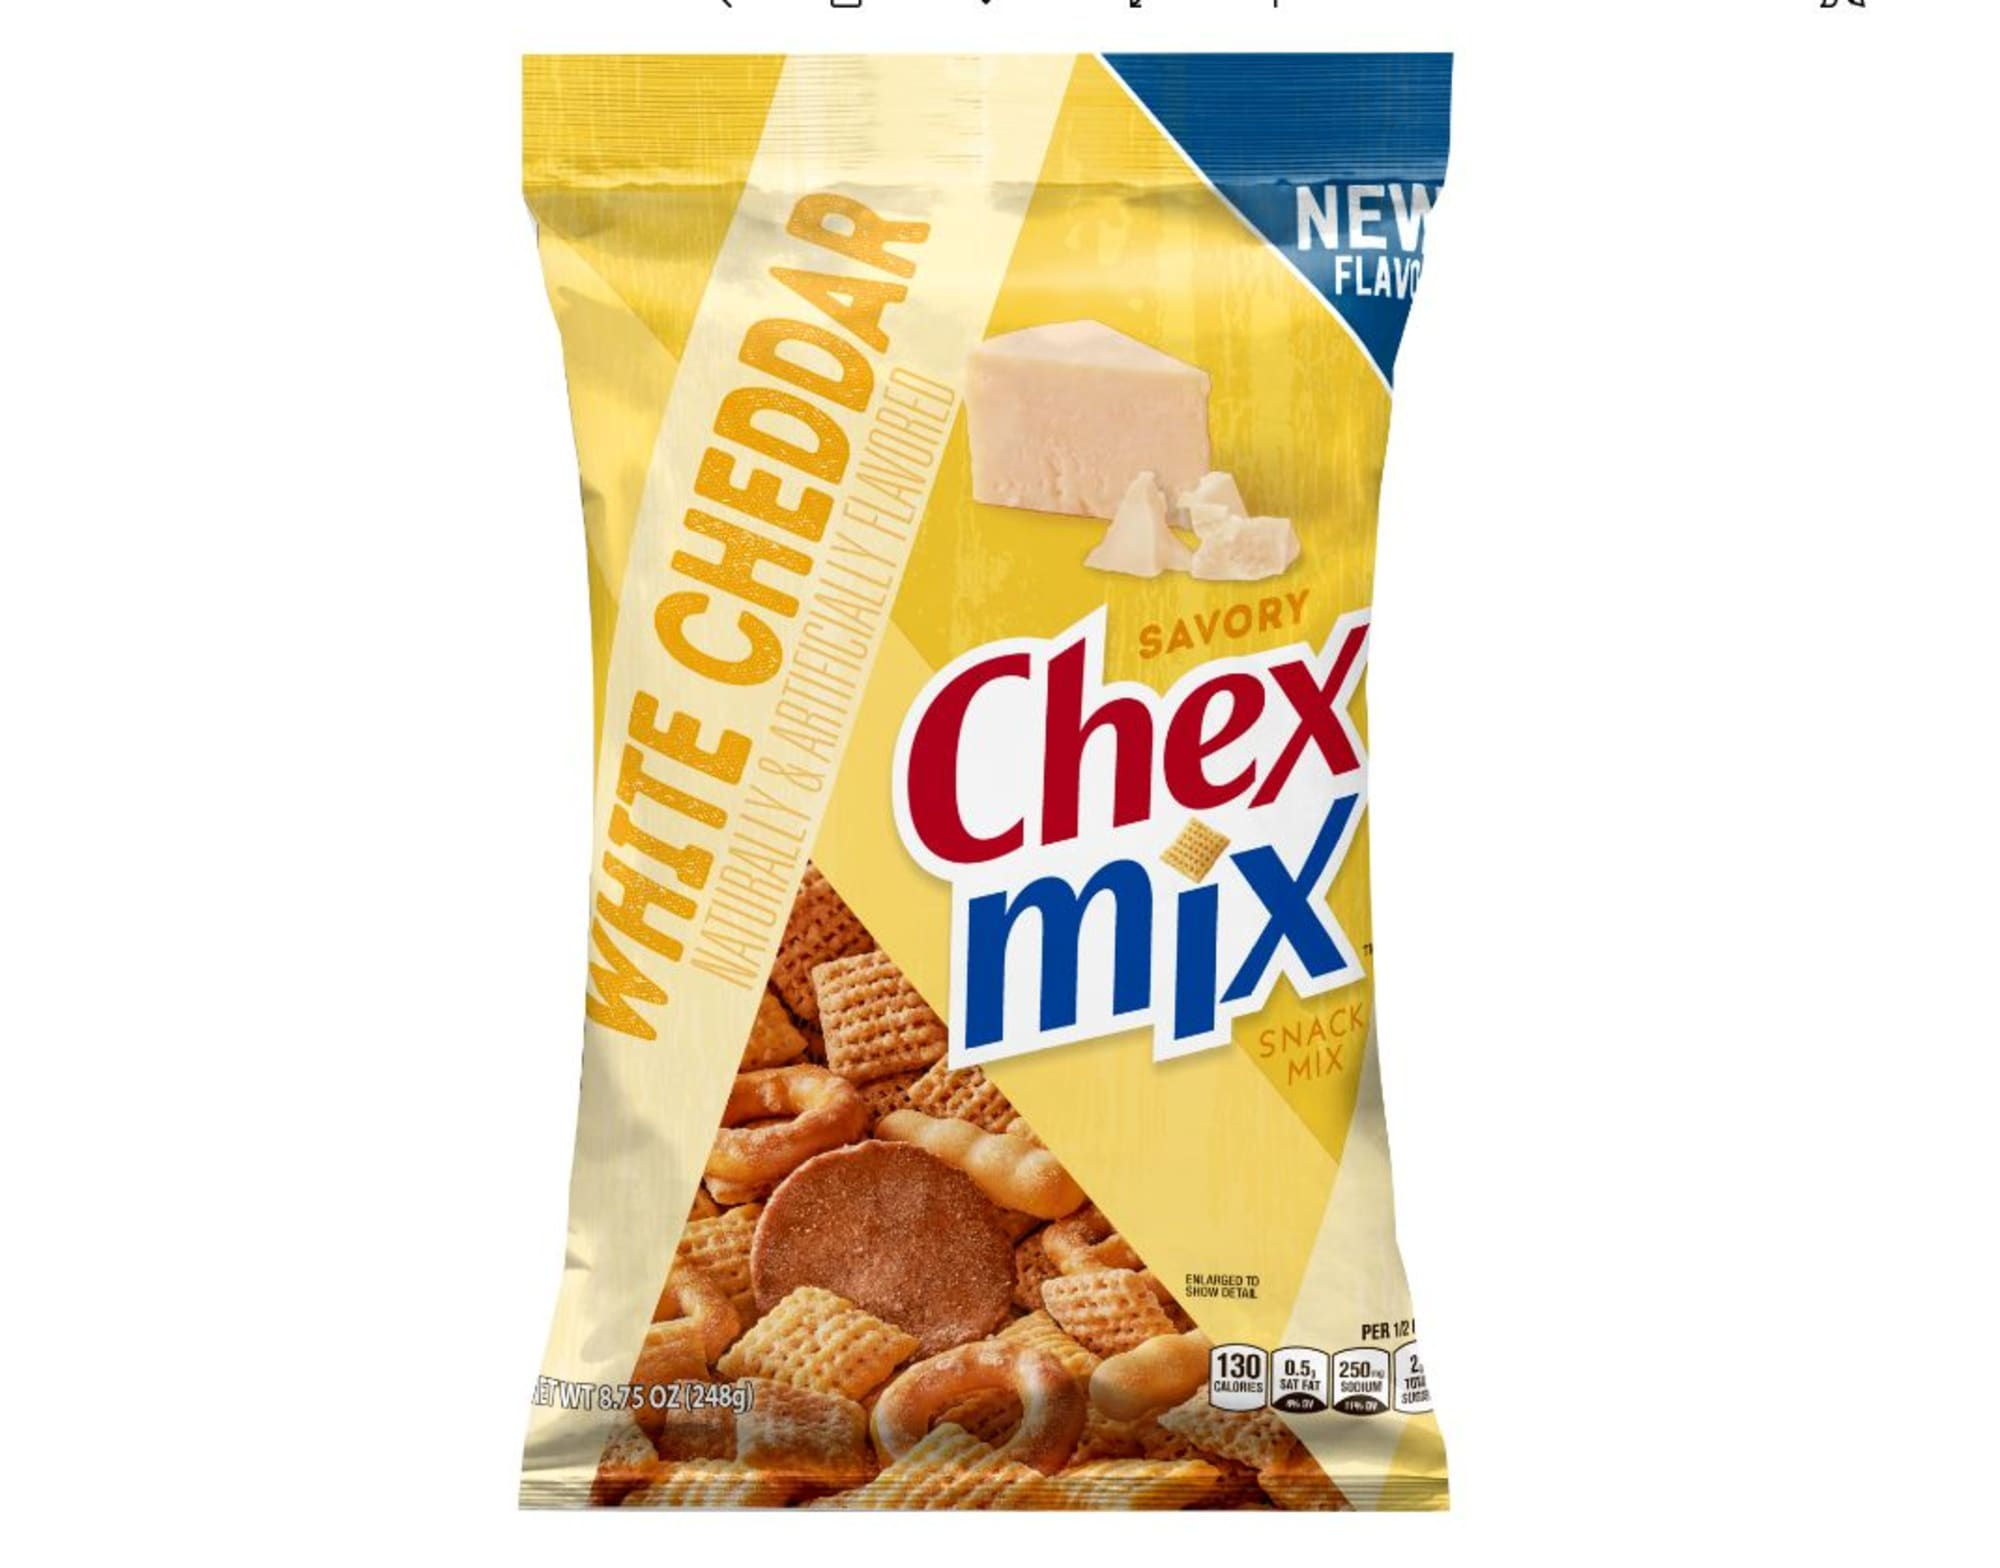 This new Chex Mix flavor is all about the cheesy goodness